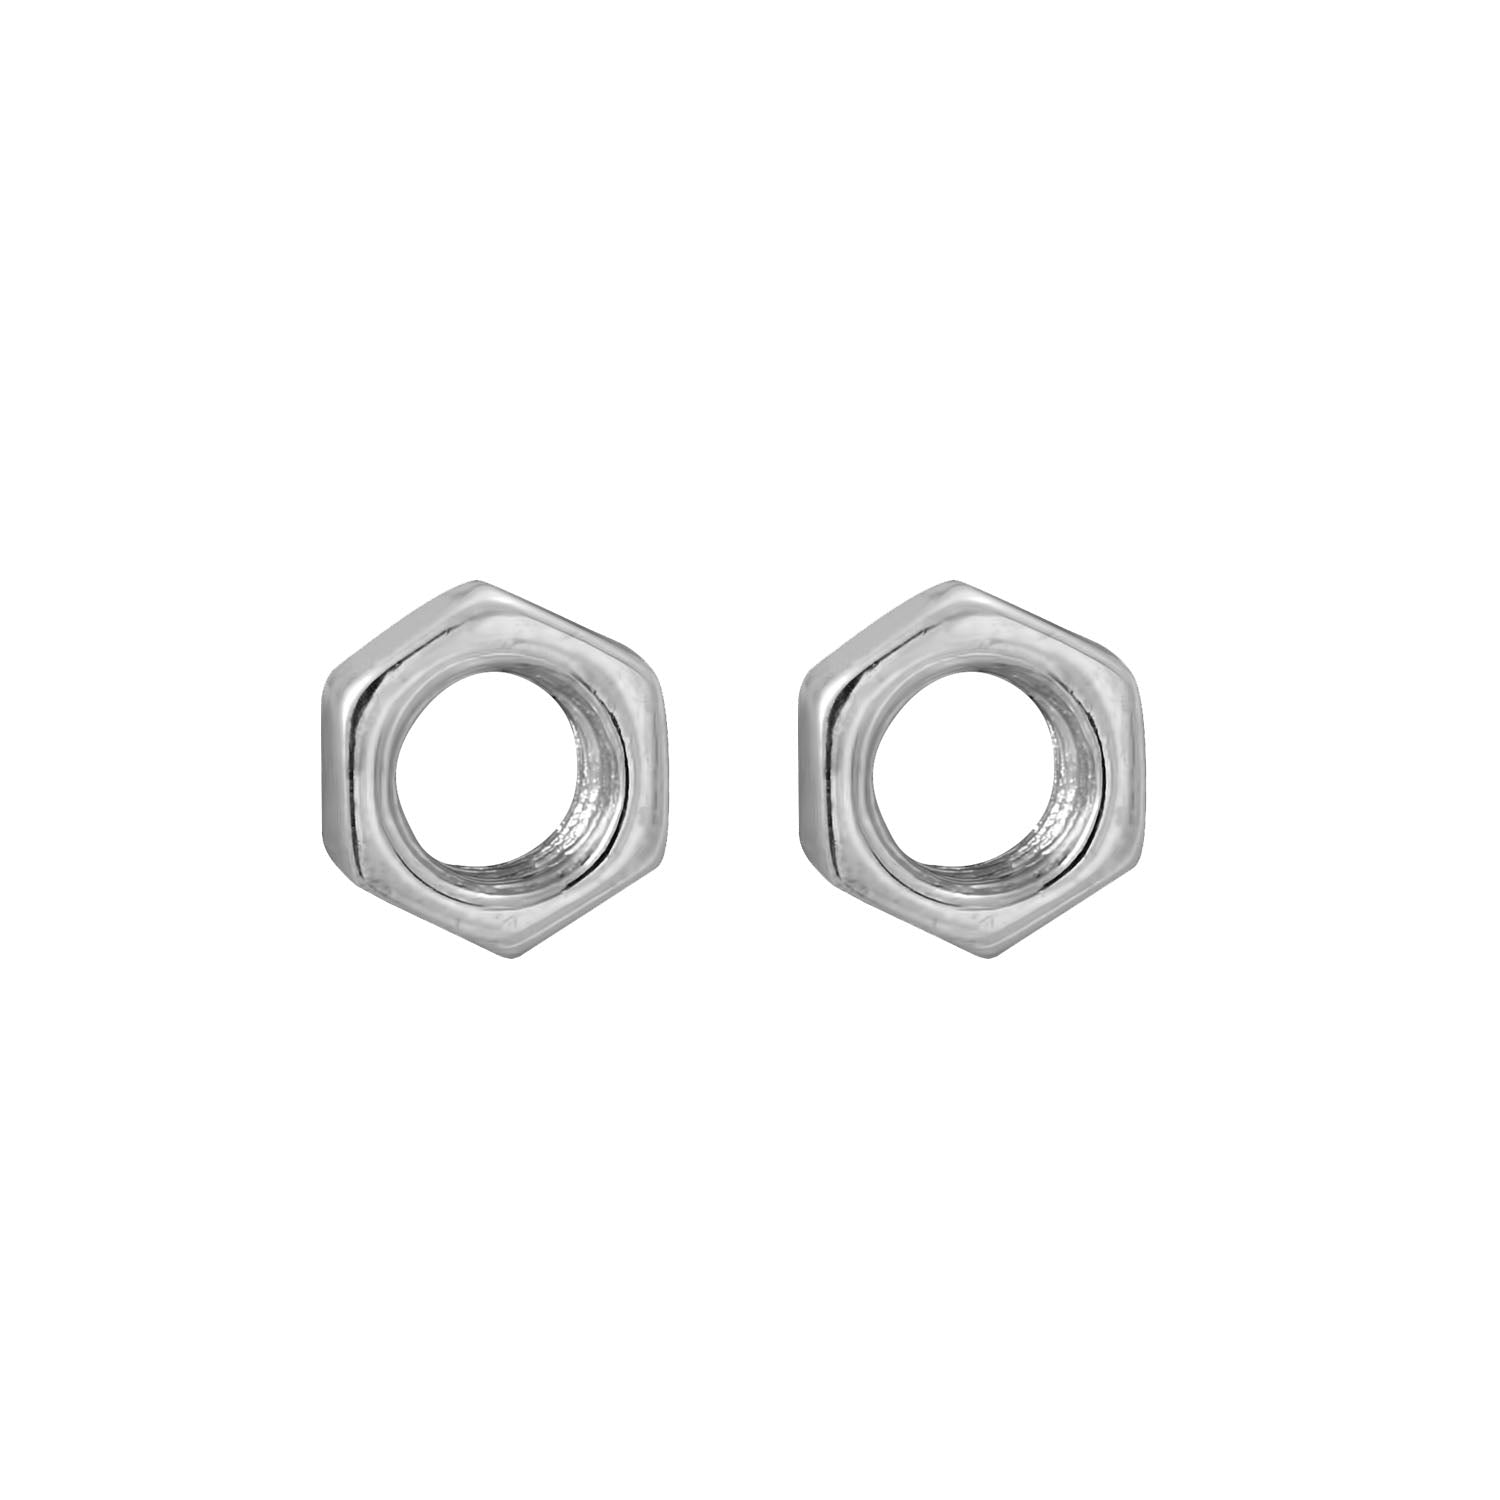 Edge Only Hex Nut Earrings in sterling silver